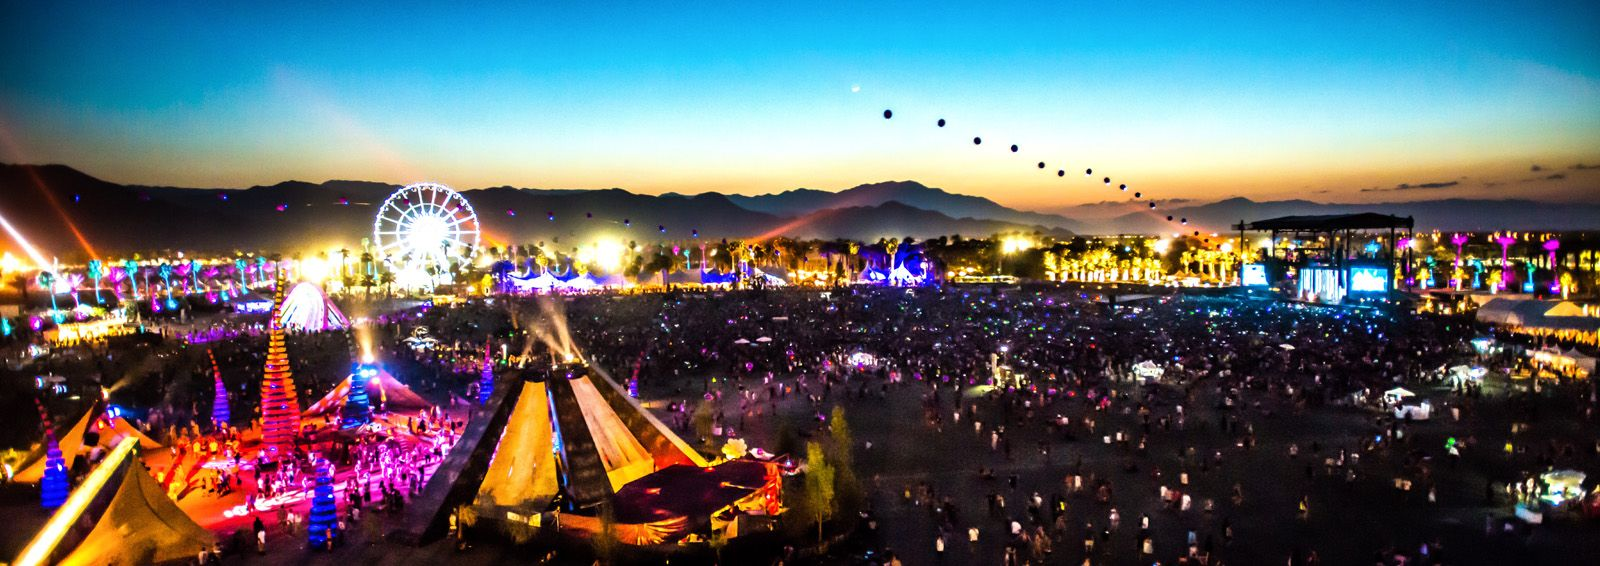 Watch Coachella's Epic 2019 Lineup Includes Sia, Ellie Goulding, and Guns N'Roses video